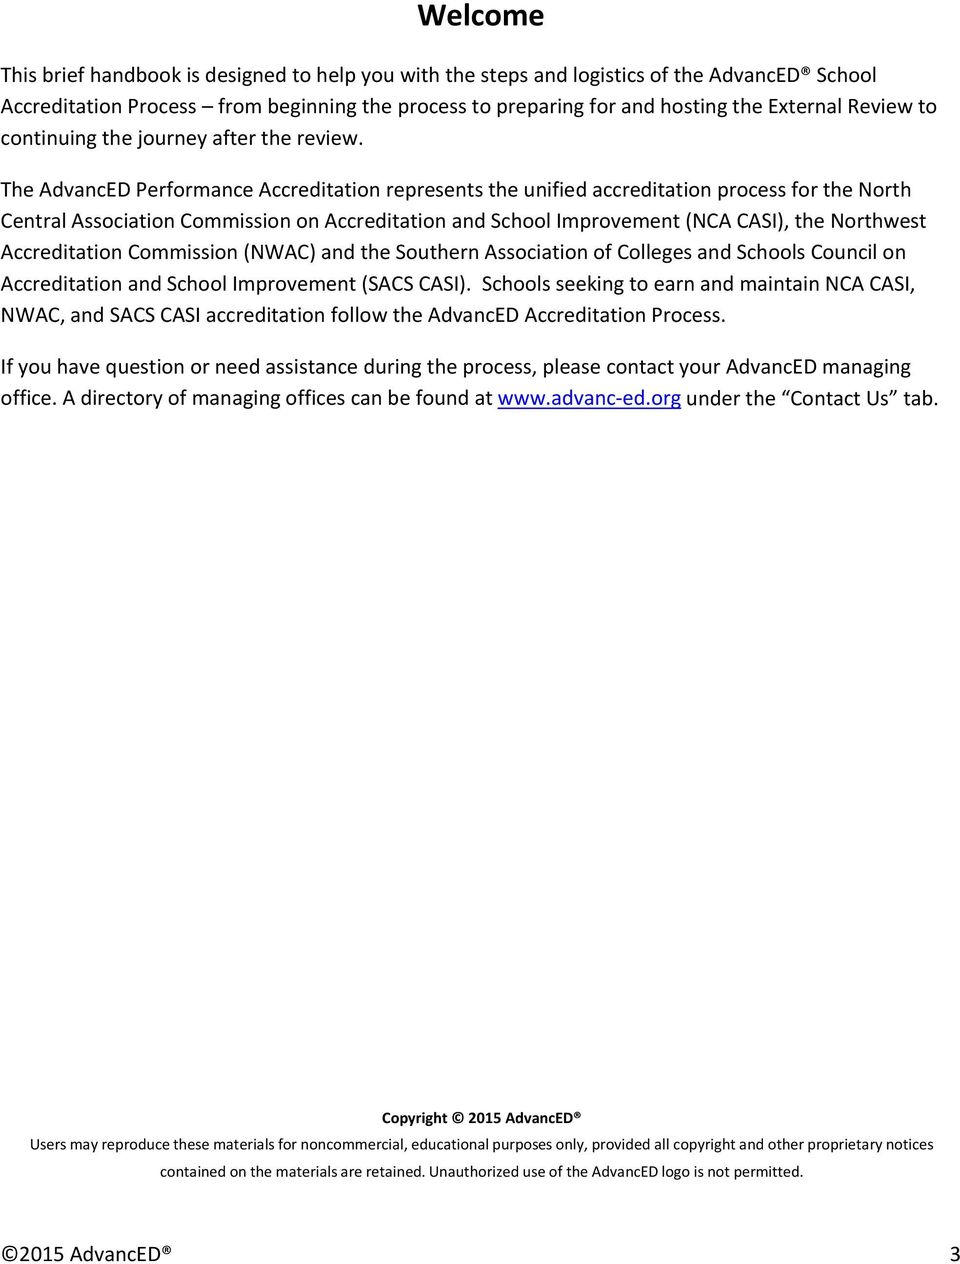 The AdvancED Performance Accreditation represents the unified accreditation process for the North Central Association Commission on Accreditation and School Improvement (NCA CASI), the Northwest